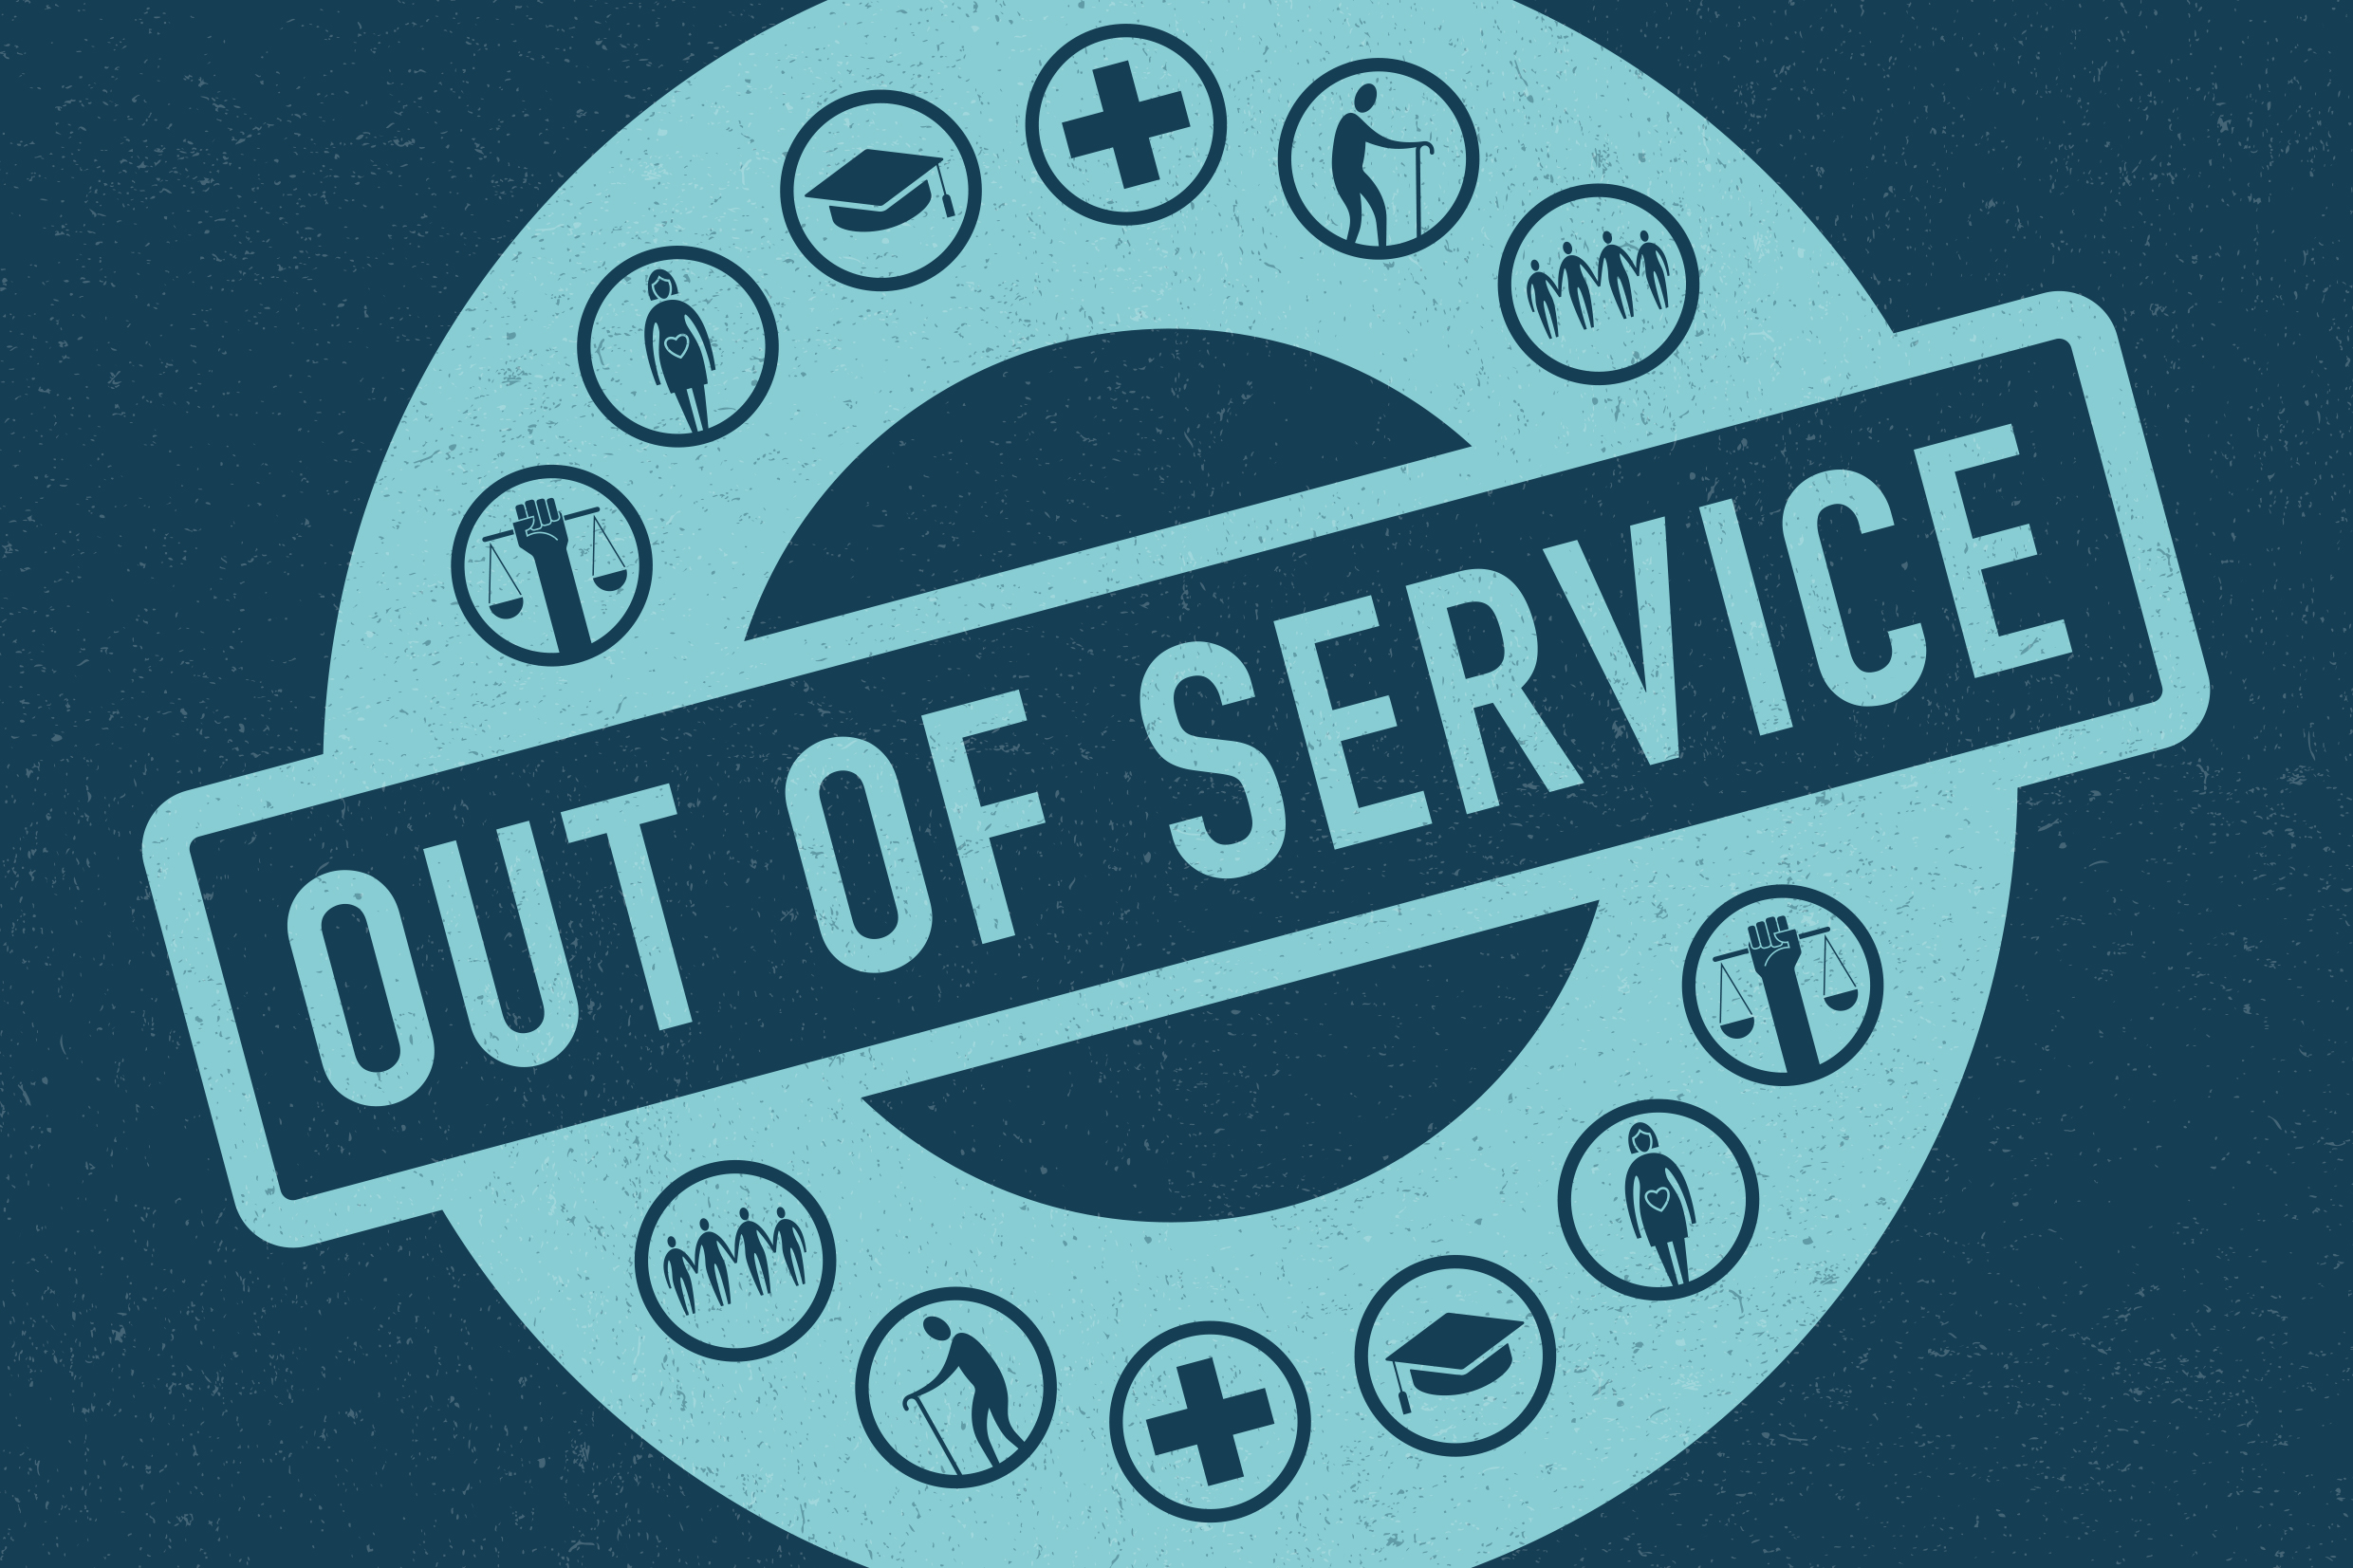 out-of-service.jpg